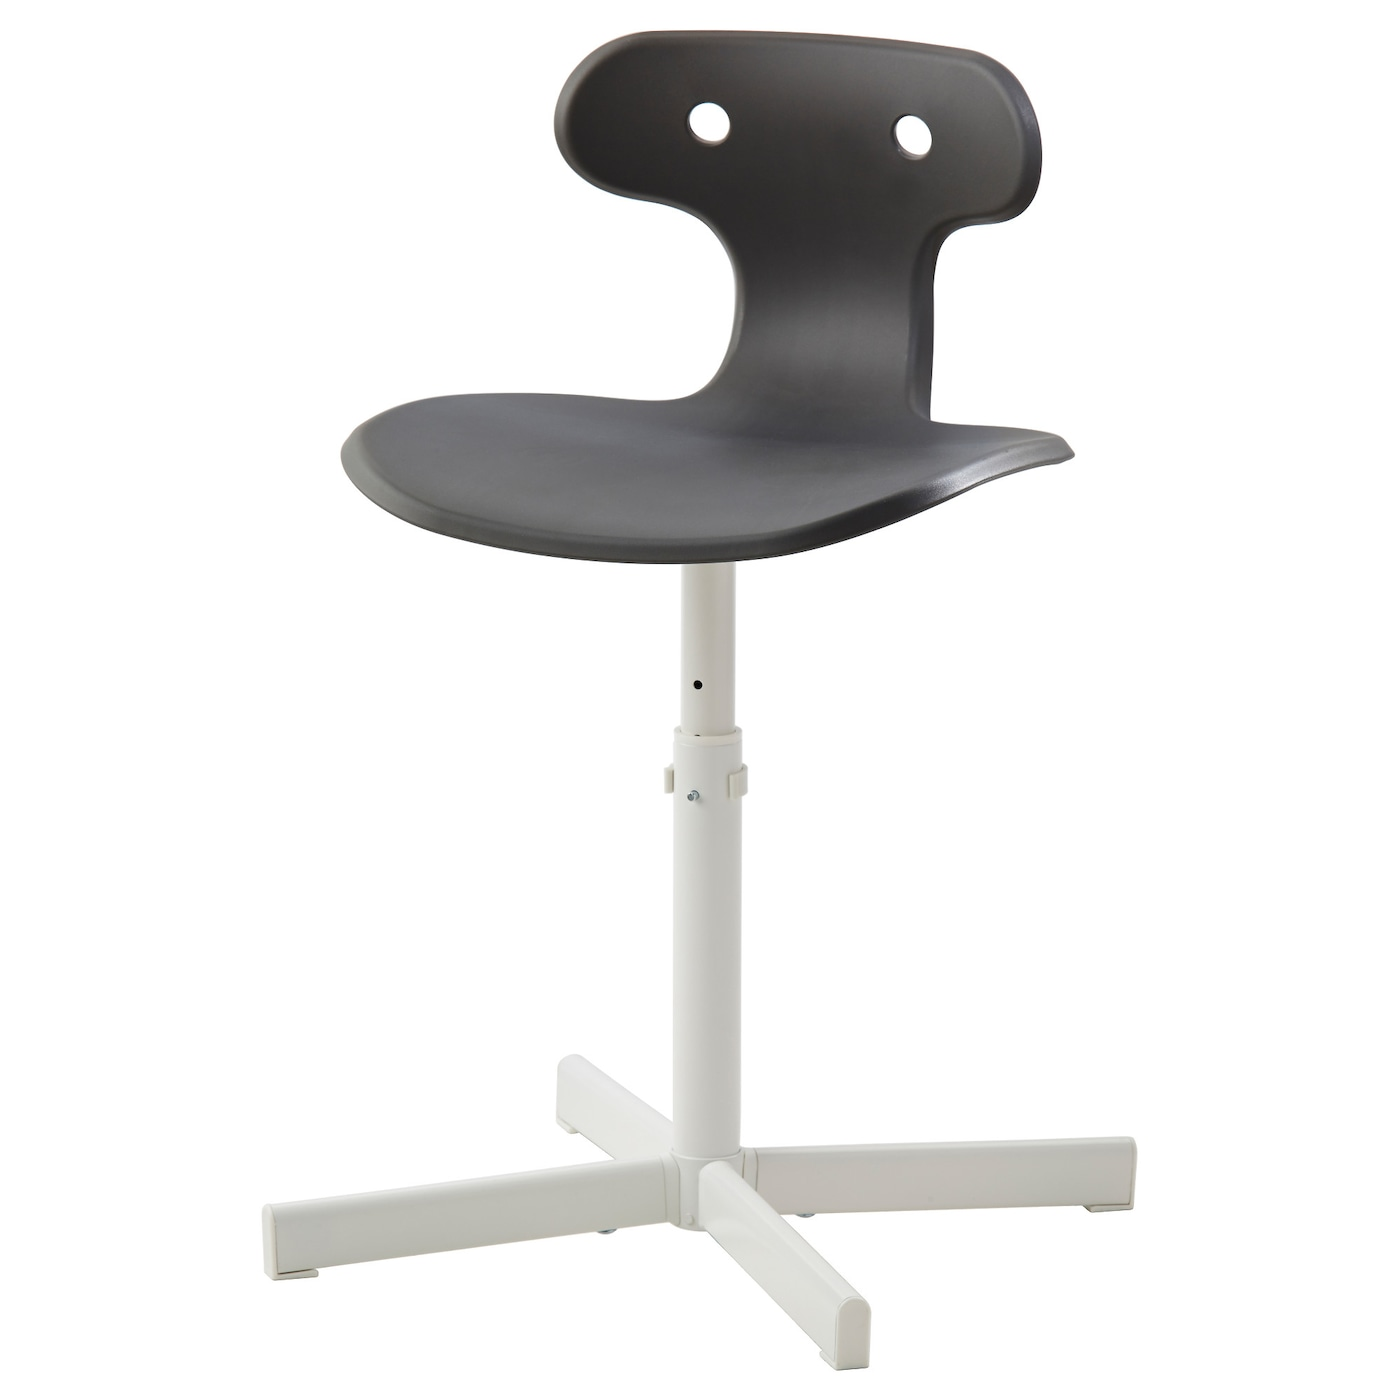 IKEA MOLTE Desk Chair Your Back Gets Support And Extra Relief From The  Built In